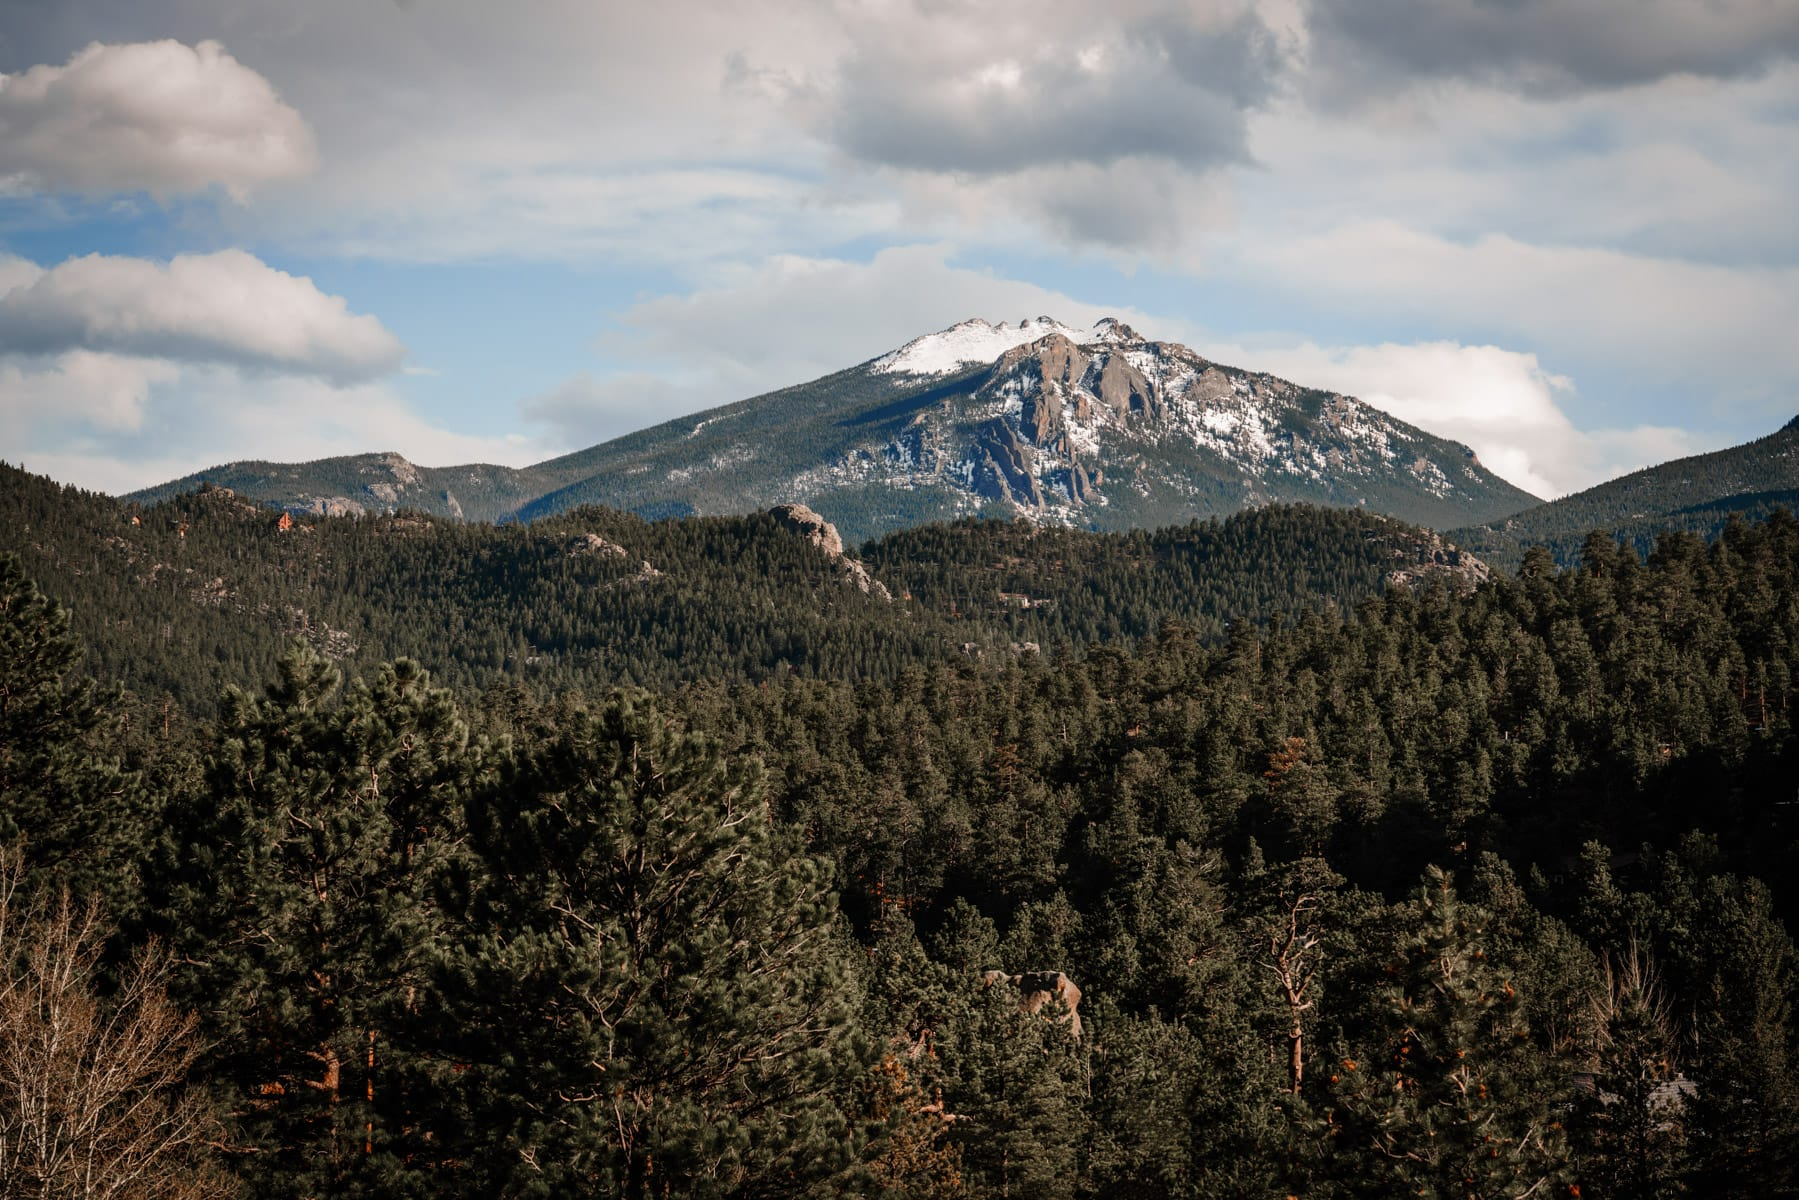 A rugged mountain rises above the evergreen forest at Colorado's Rocky Mountain National Park.